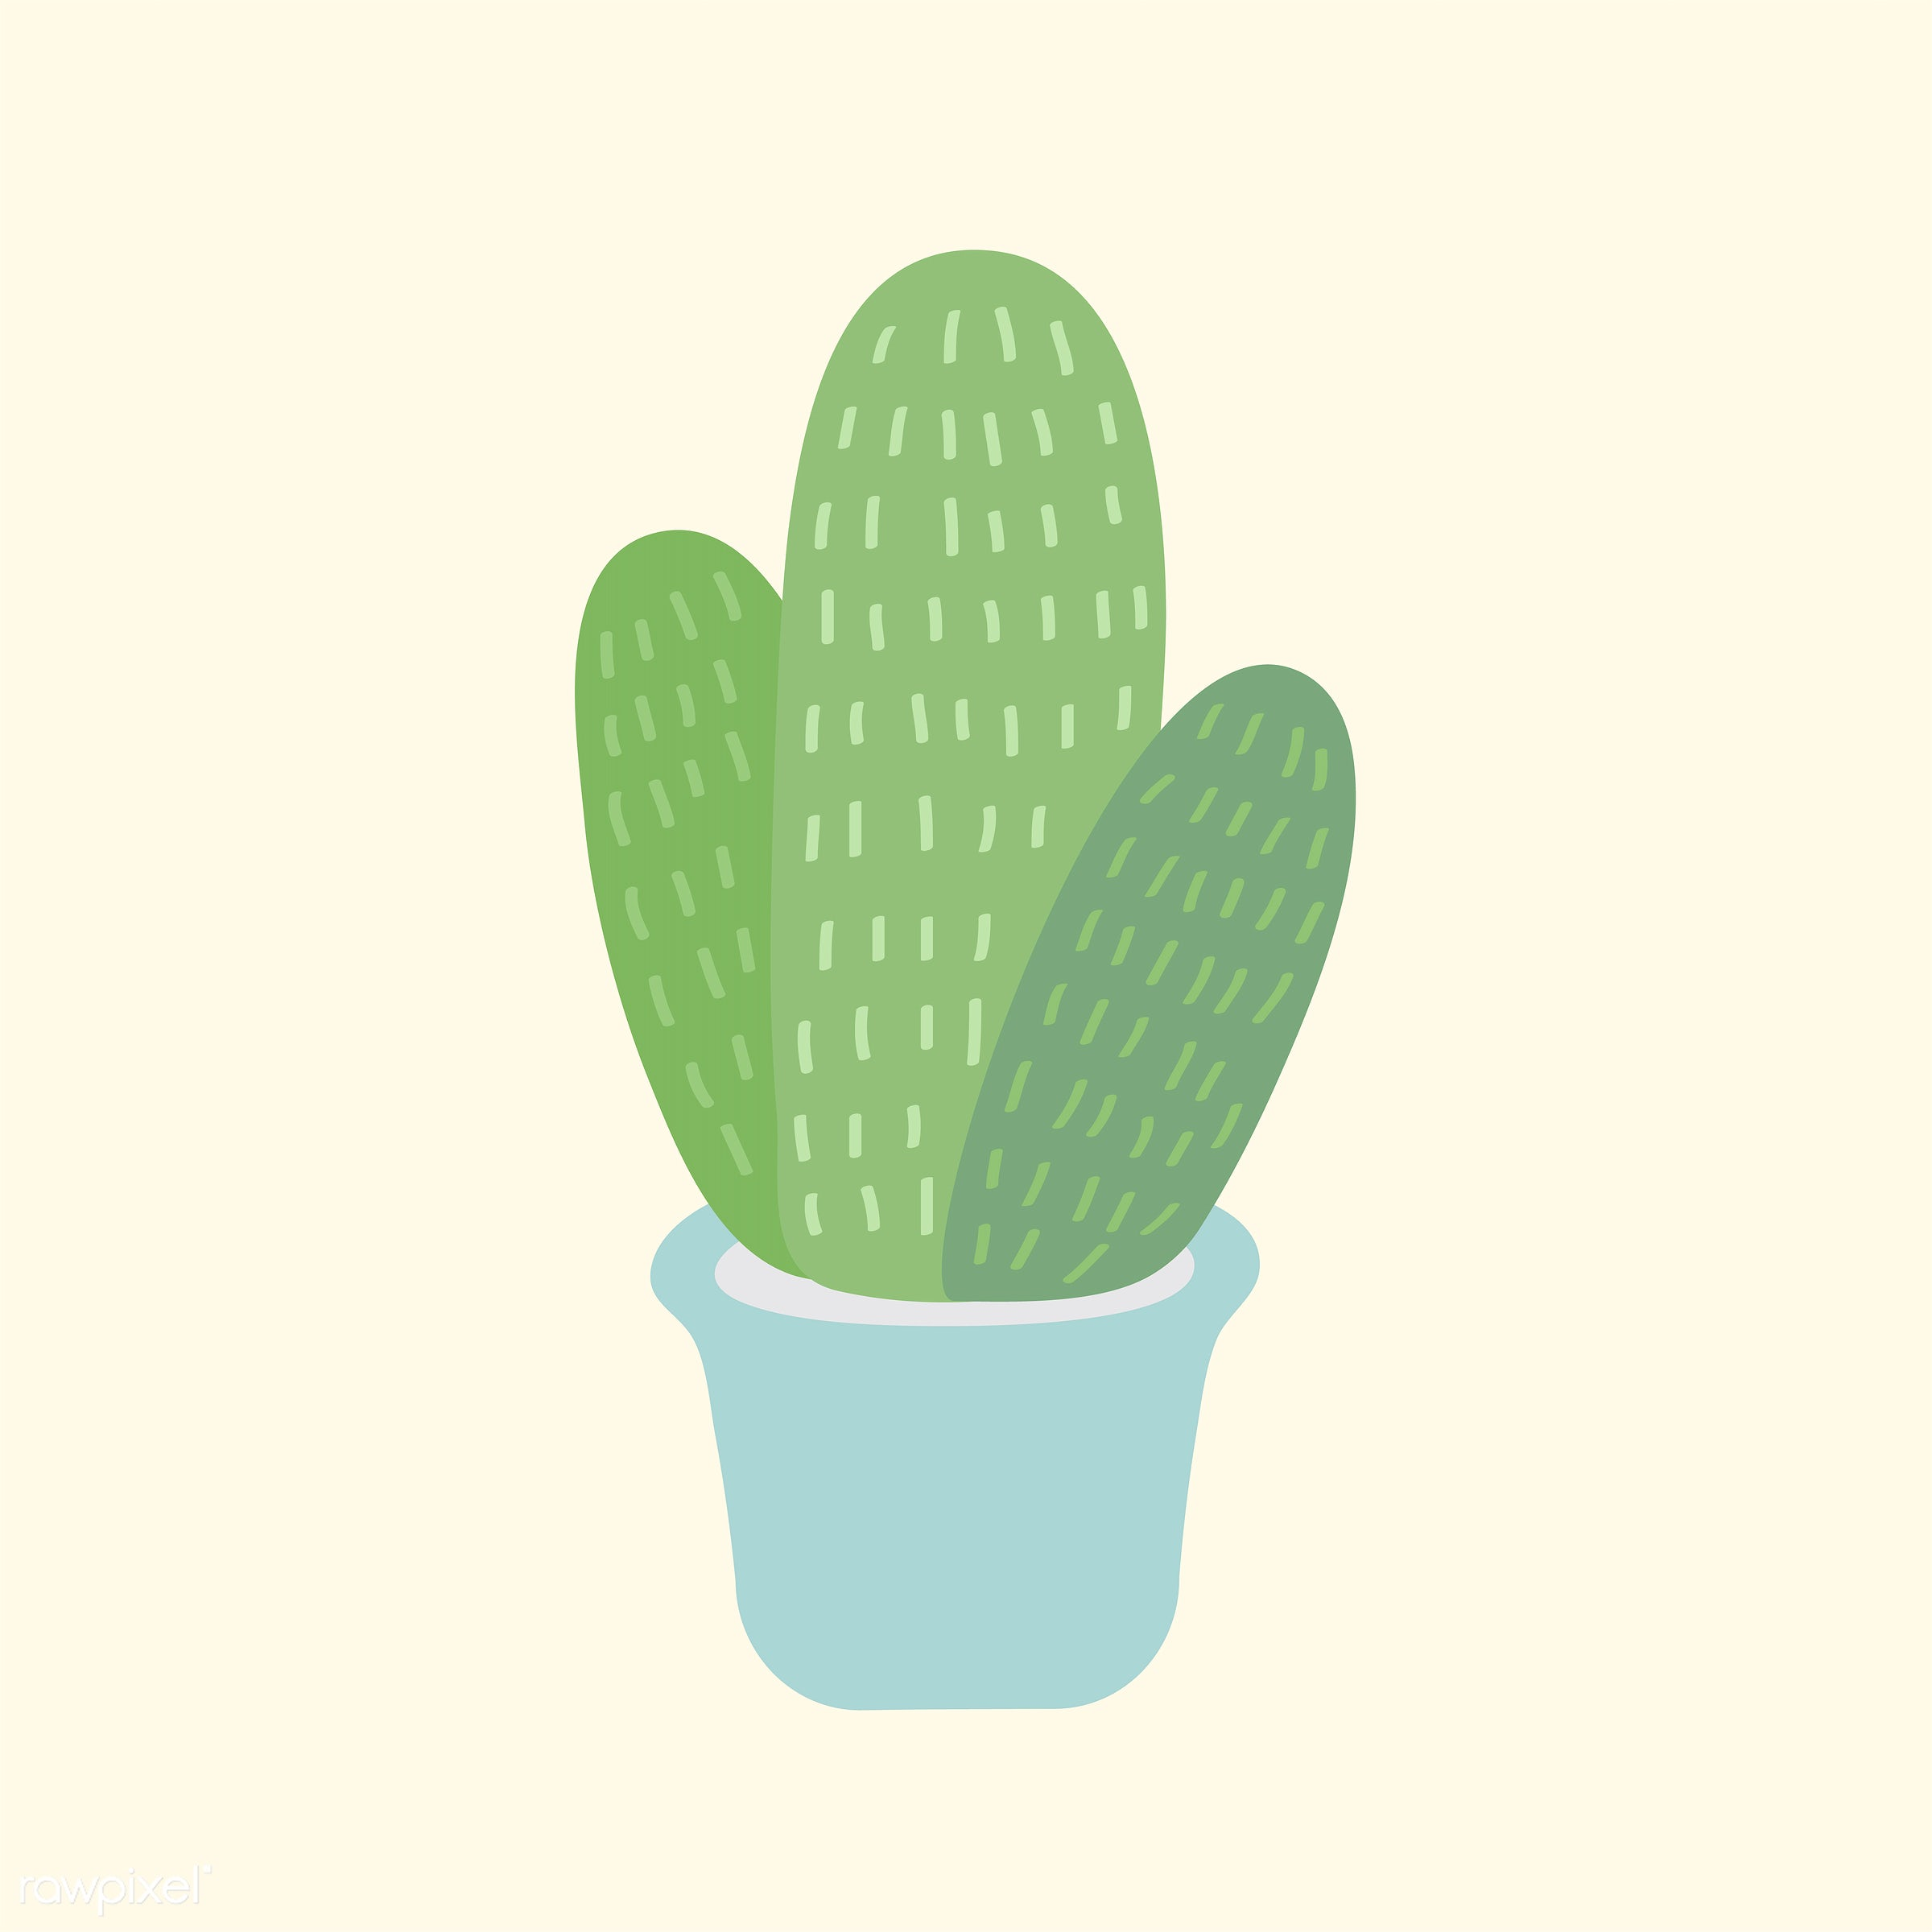 vector, illustration, graphic, cute, sweet, girly, pastel, cactus, cacti, plant